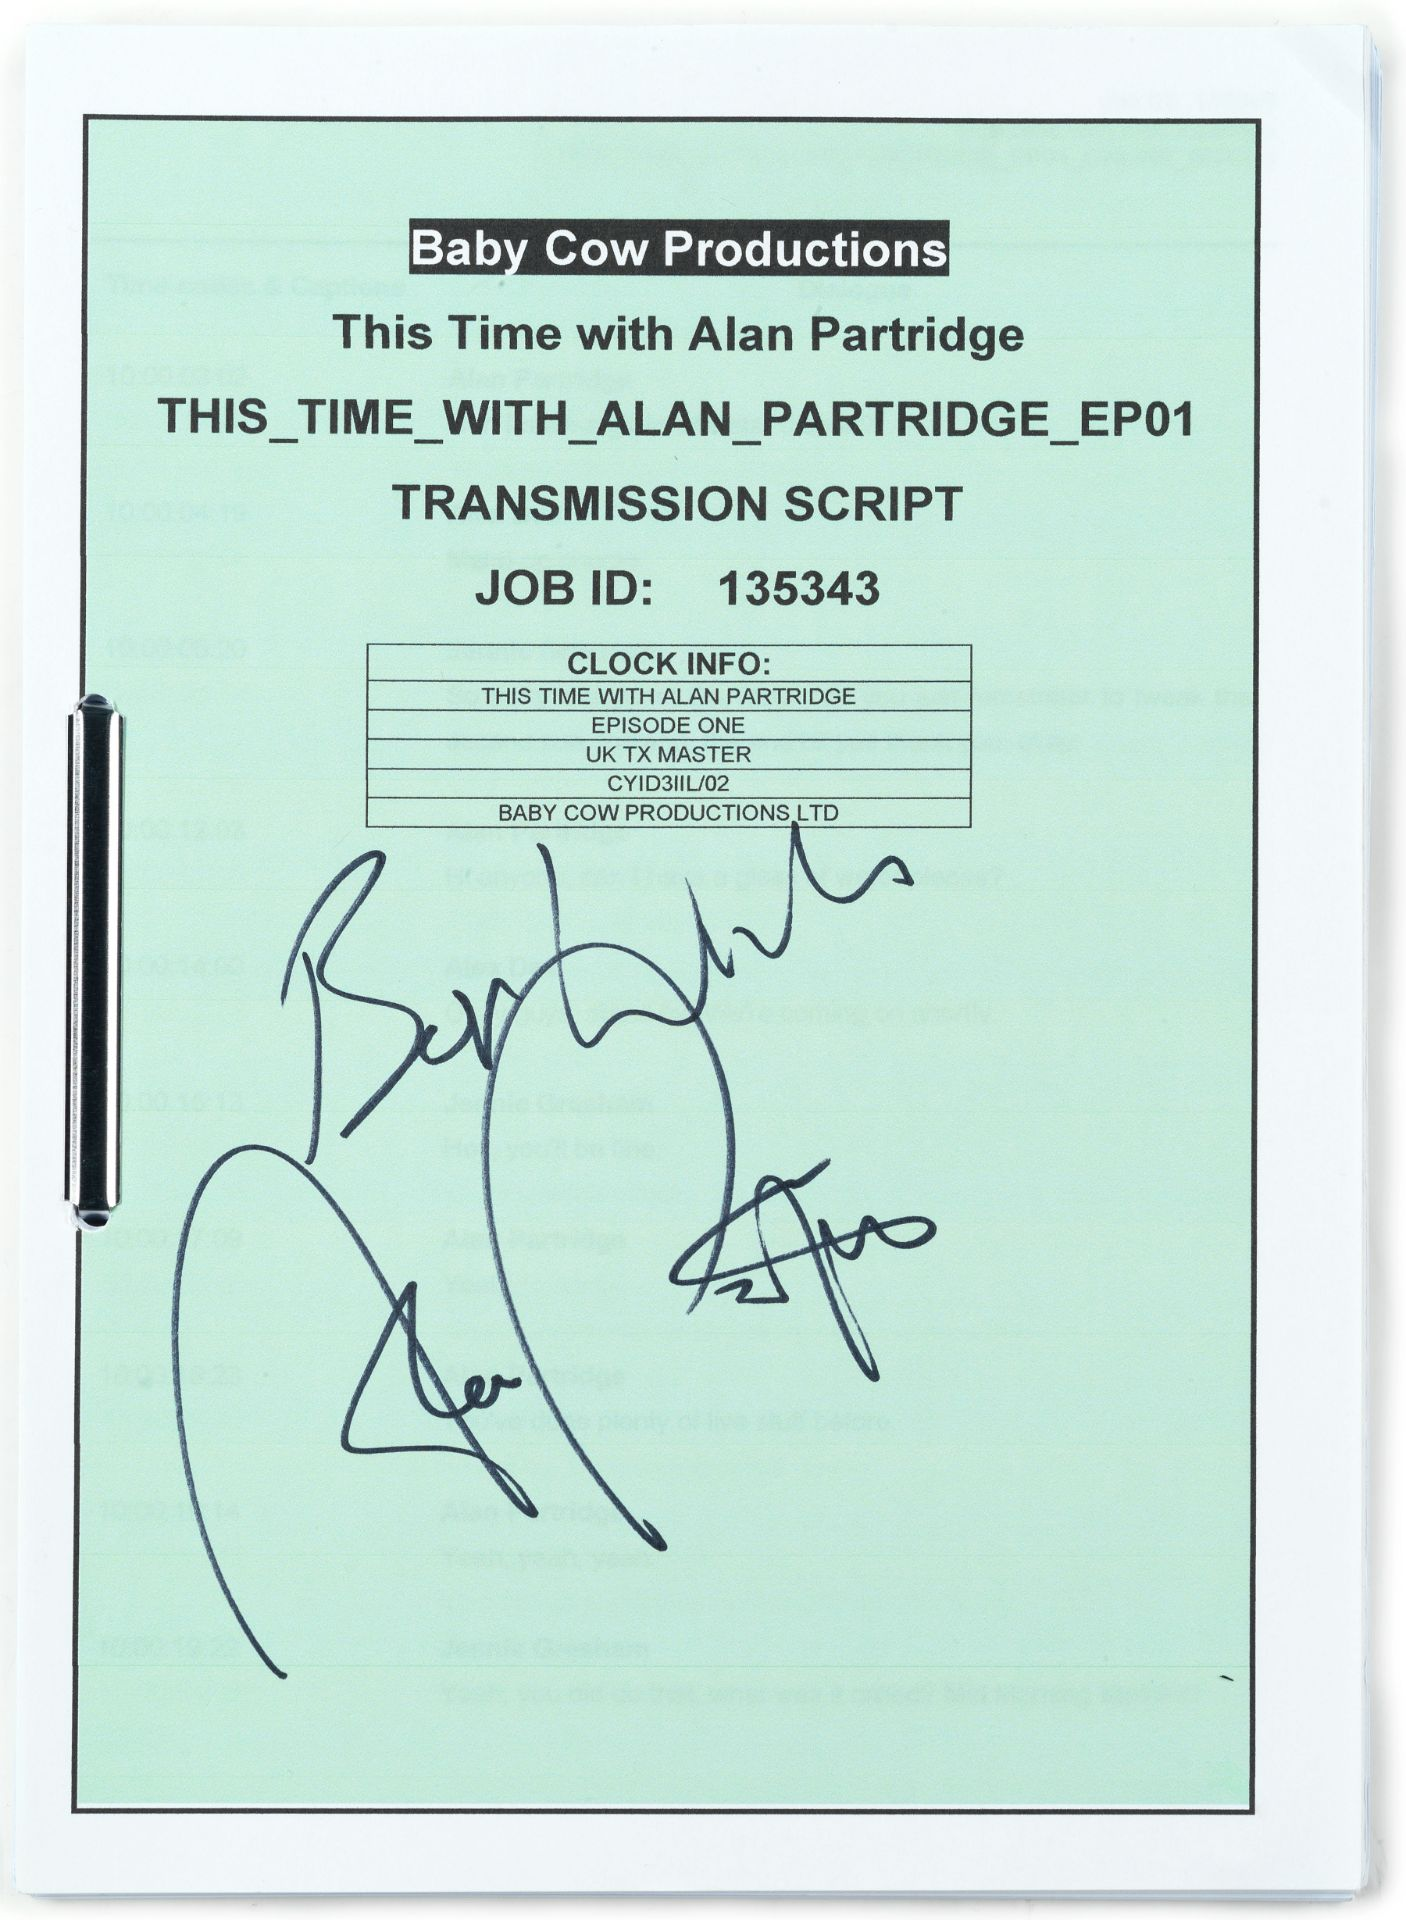 This Time With Alan Partridge: An autographed shooting script together with a signed transmission...